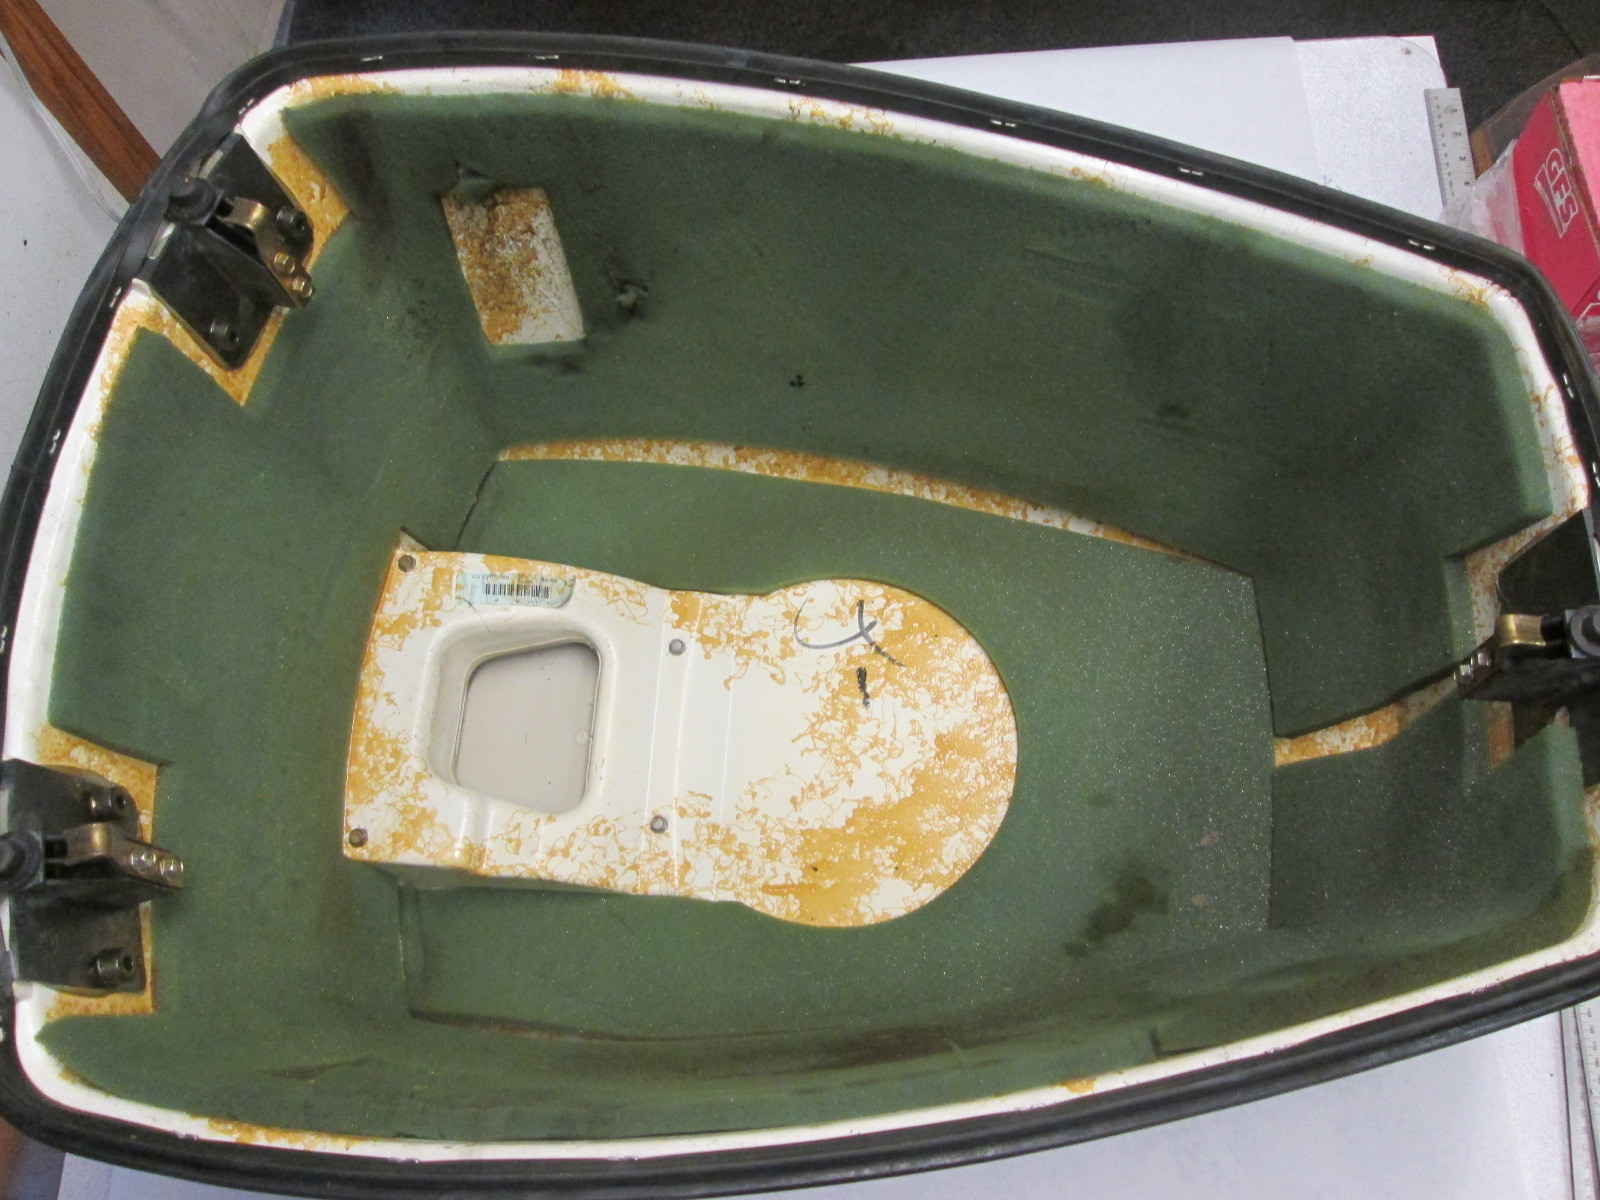 0436164 436164 Johnson Evinrude Engine Cover Assembly 120